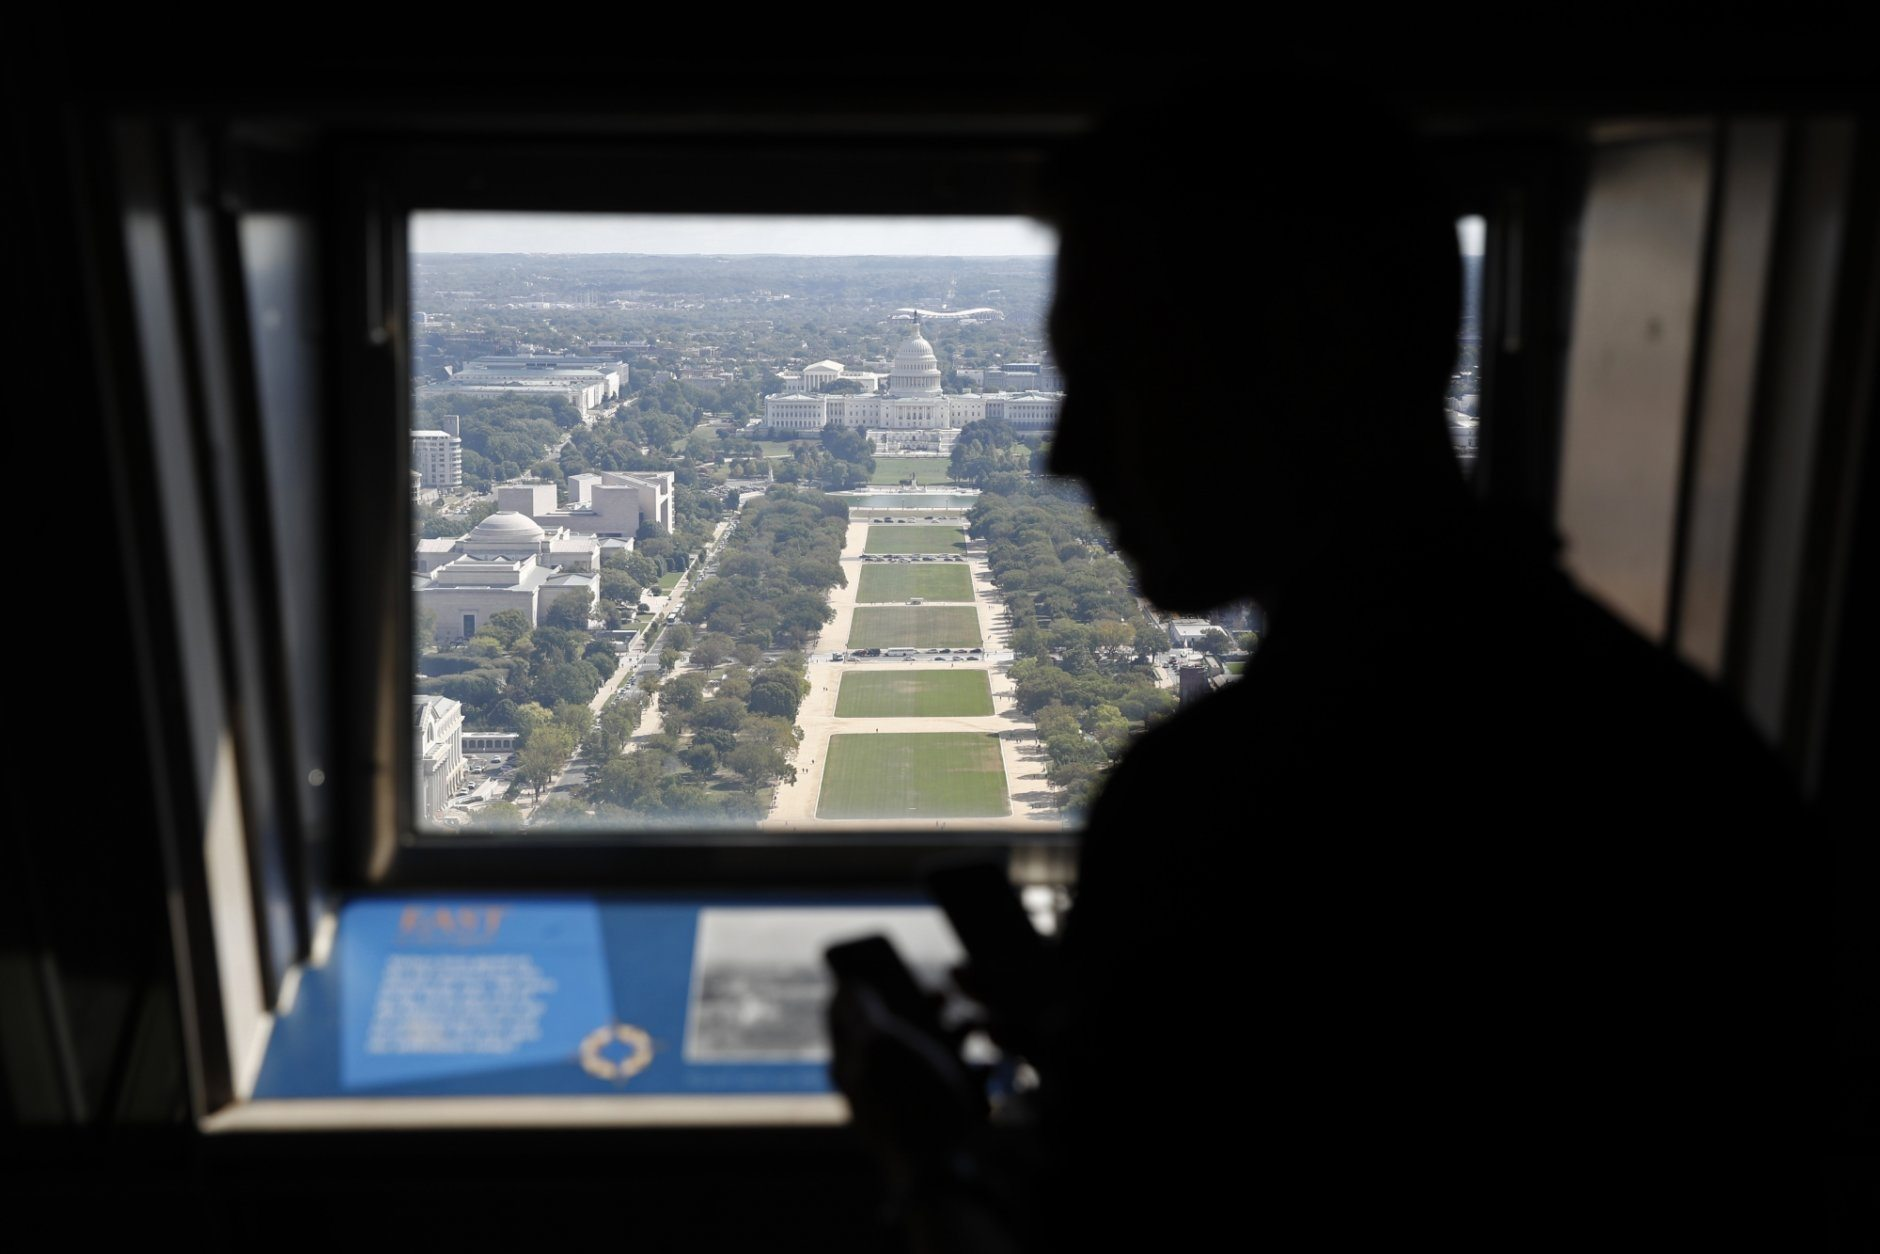 A visitor looks out toward the U.S. Capitol from the Washington Monument's observation level during a press preview tour ahead of the monument's official reopening, Wednesday, Sept. 18, 2019, in Washington. The monument, which has been closed to the public since August 2016, is scheduled to re-open Thursday, Sept. 19. (AP Photo/Patrick Semansky)